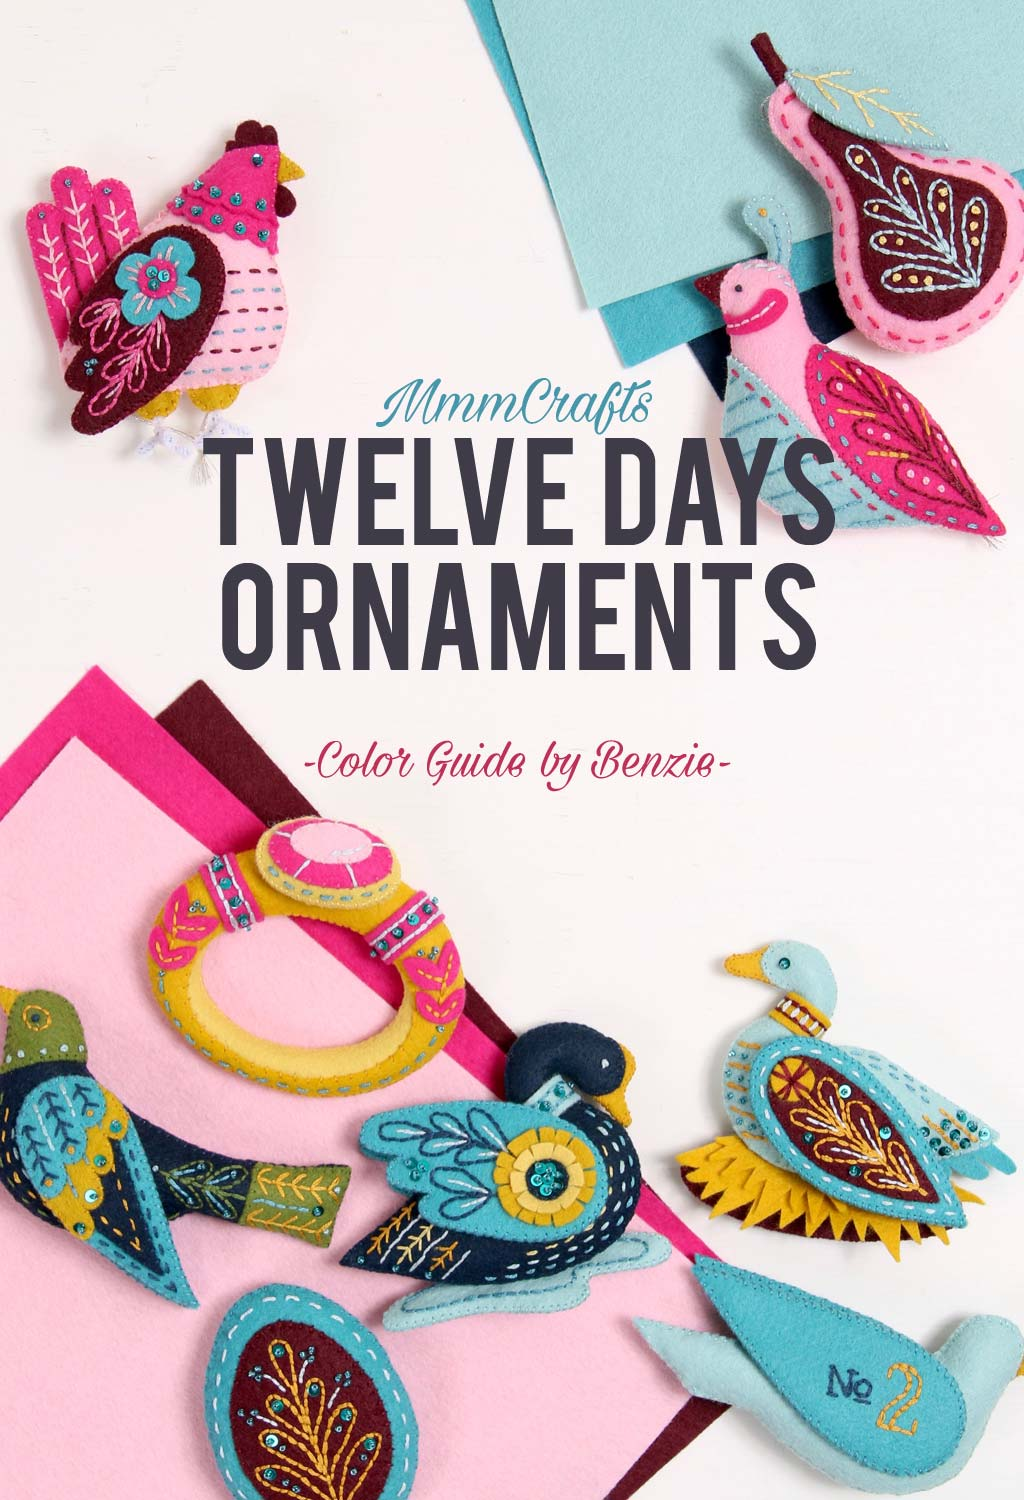 12 days ornaments craft